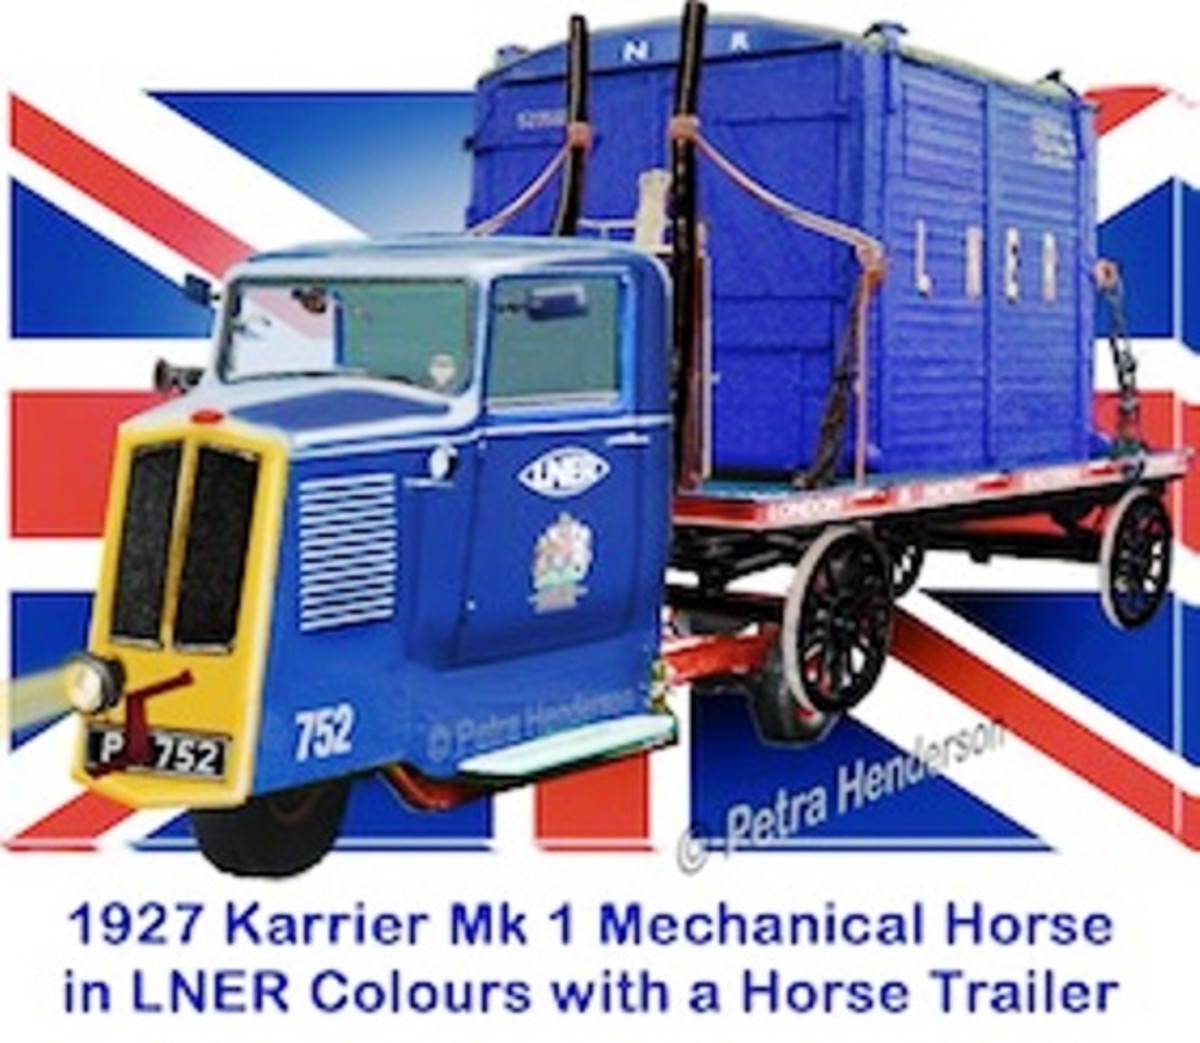 A model of a PCH 1927 Karrier mechanical horse in LNER livery. These vehicles were furnished with narrow, tapering cabs and engine housing